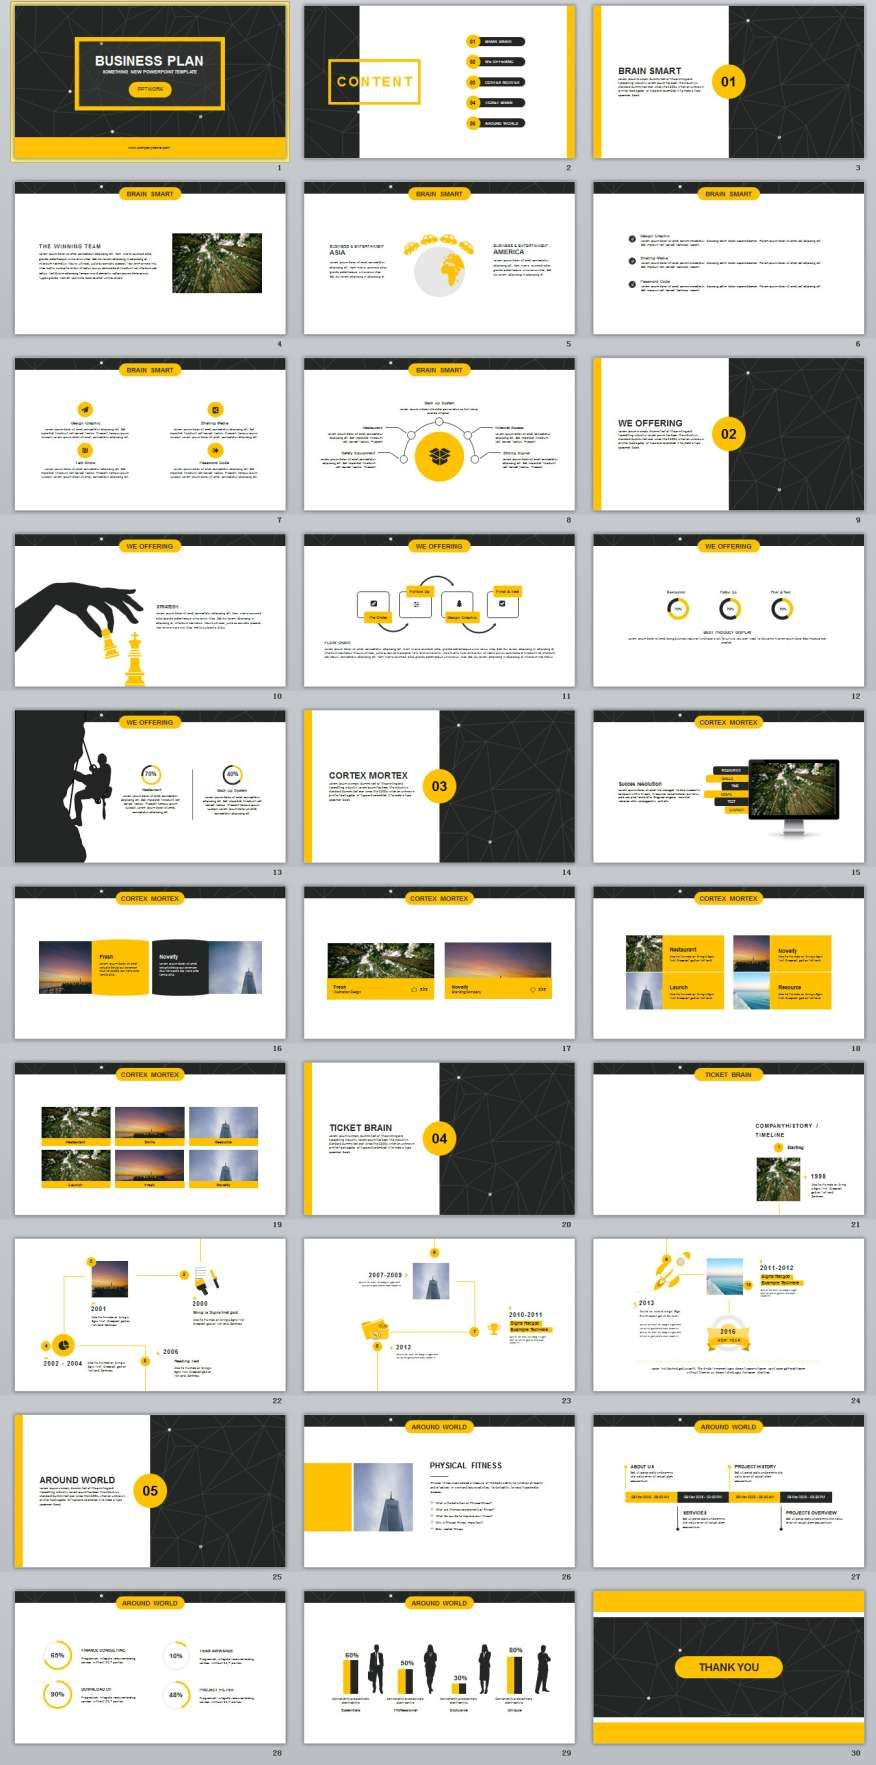 examples of business plan powerpoint presentations